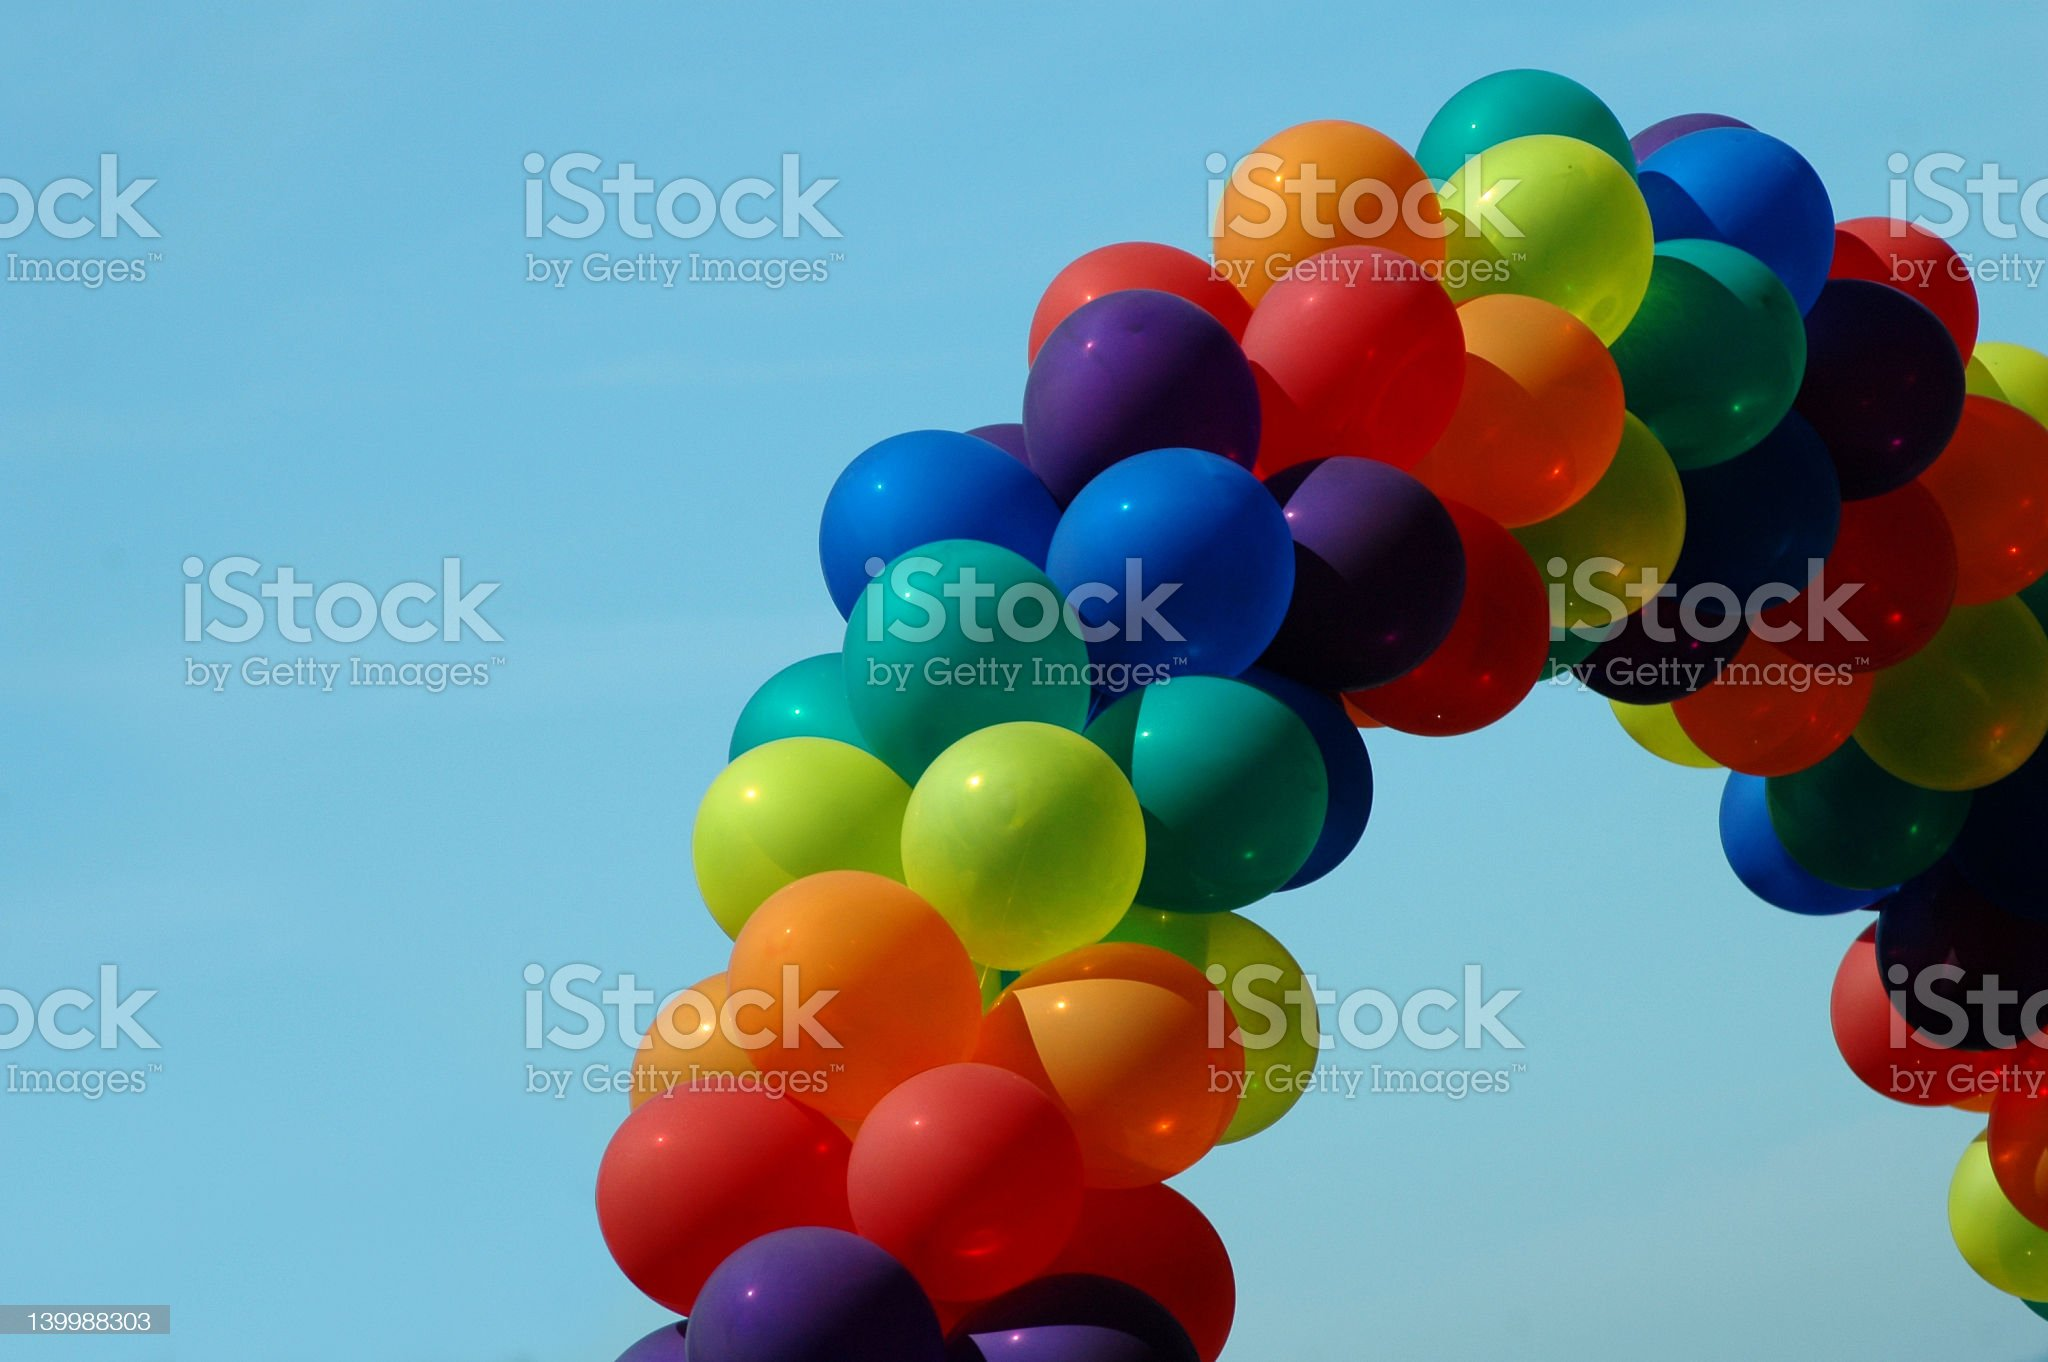 Arch of rainbow balloons in front of blue sky royalty-free stock photo